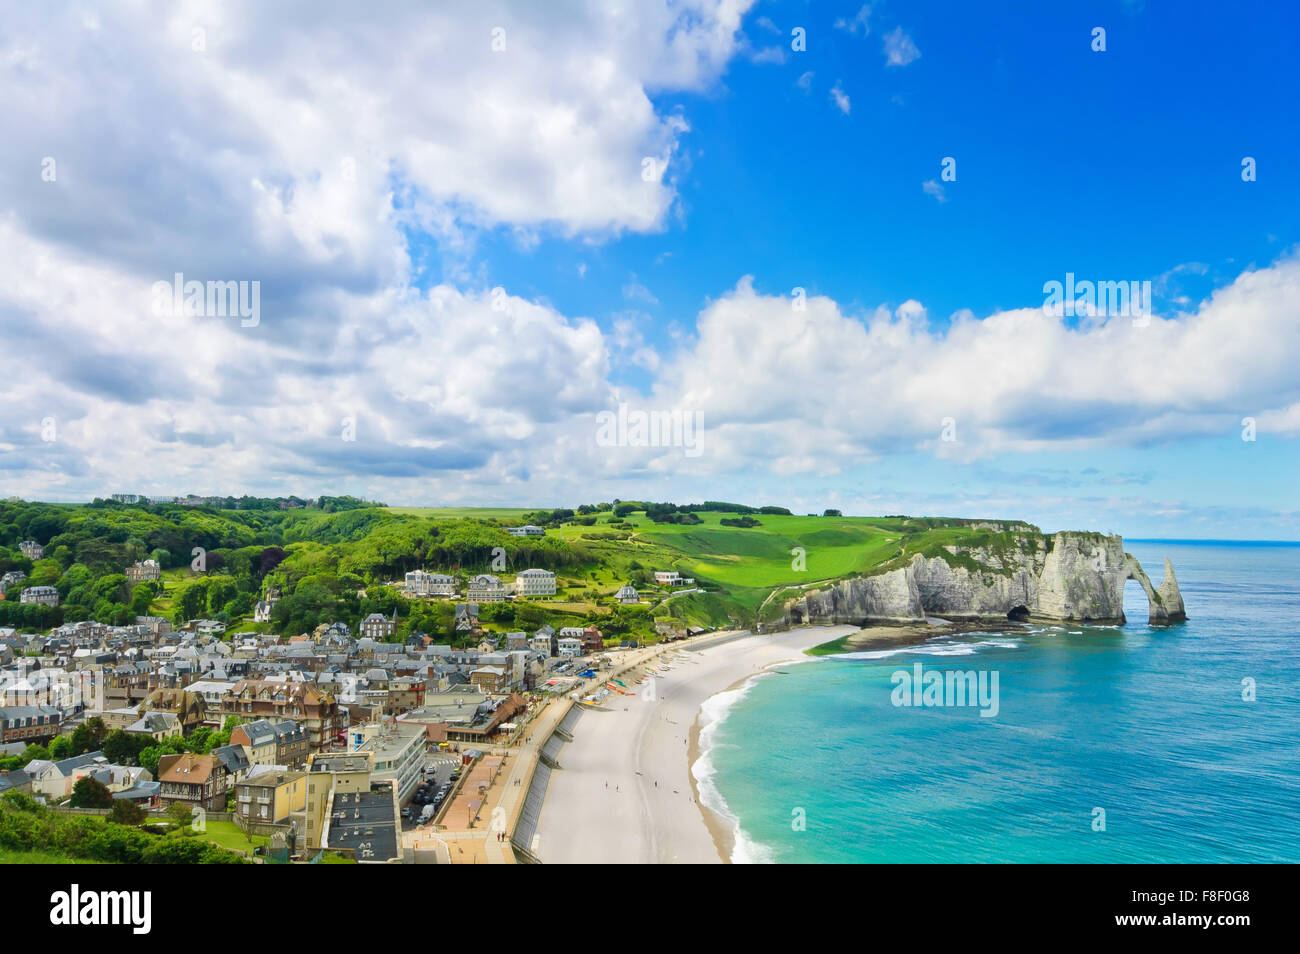 Etretat village, its bay beach and Aval cliff landmark. Aerial view. Normandy, France, Europe. - Stock Image